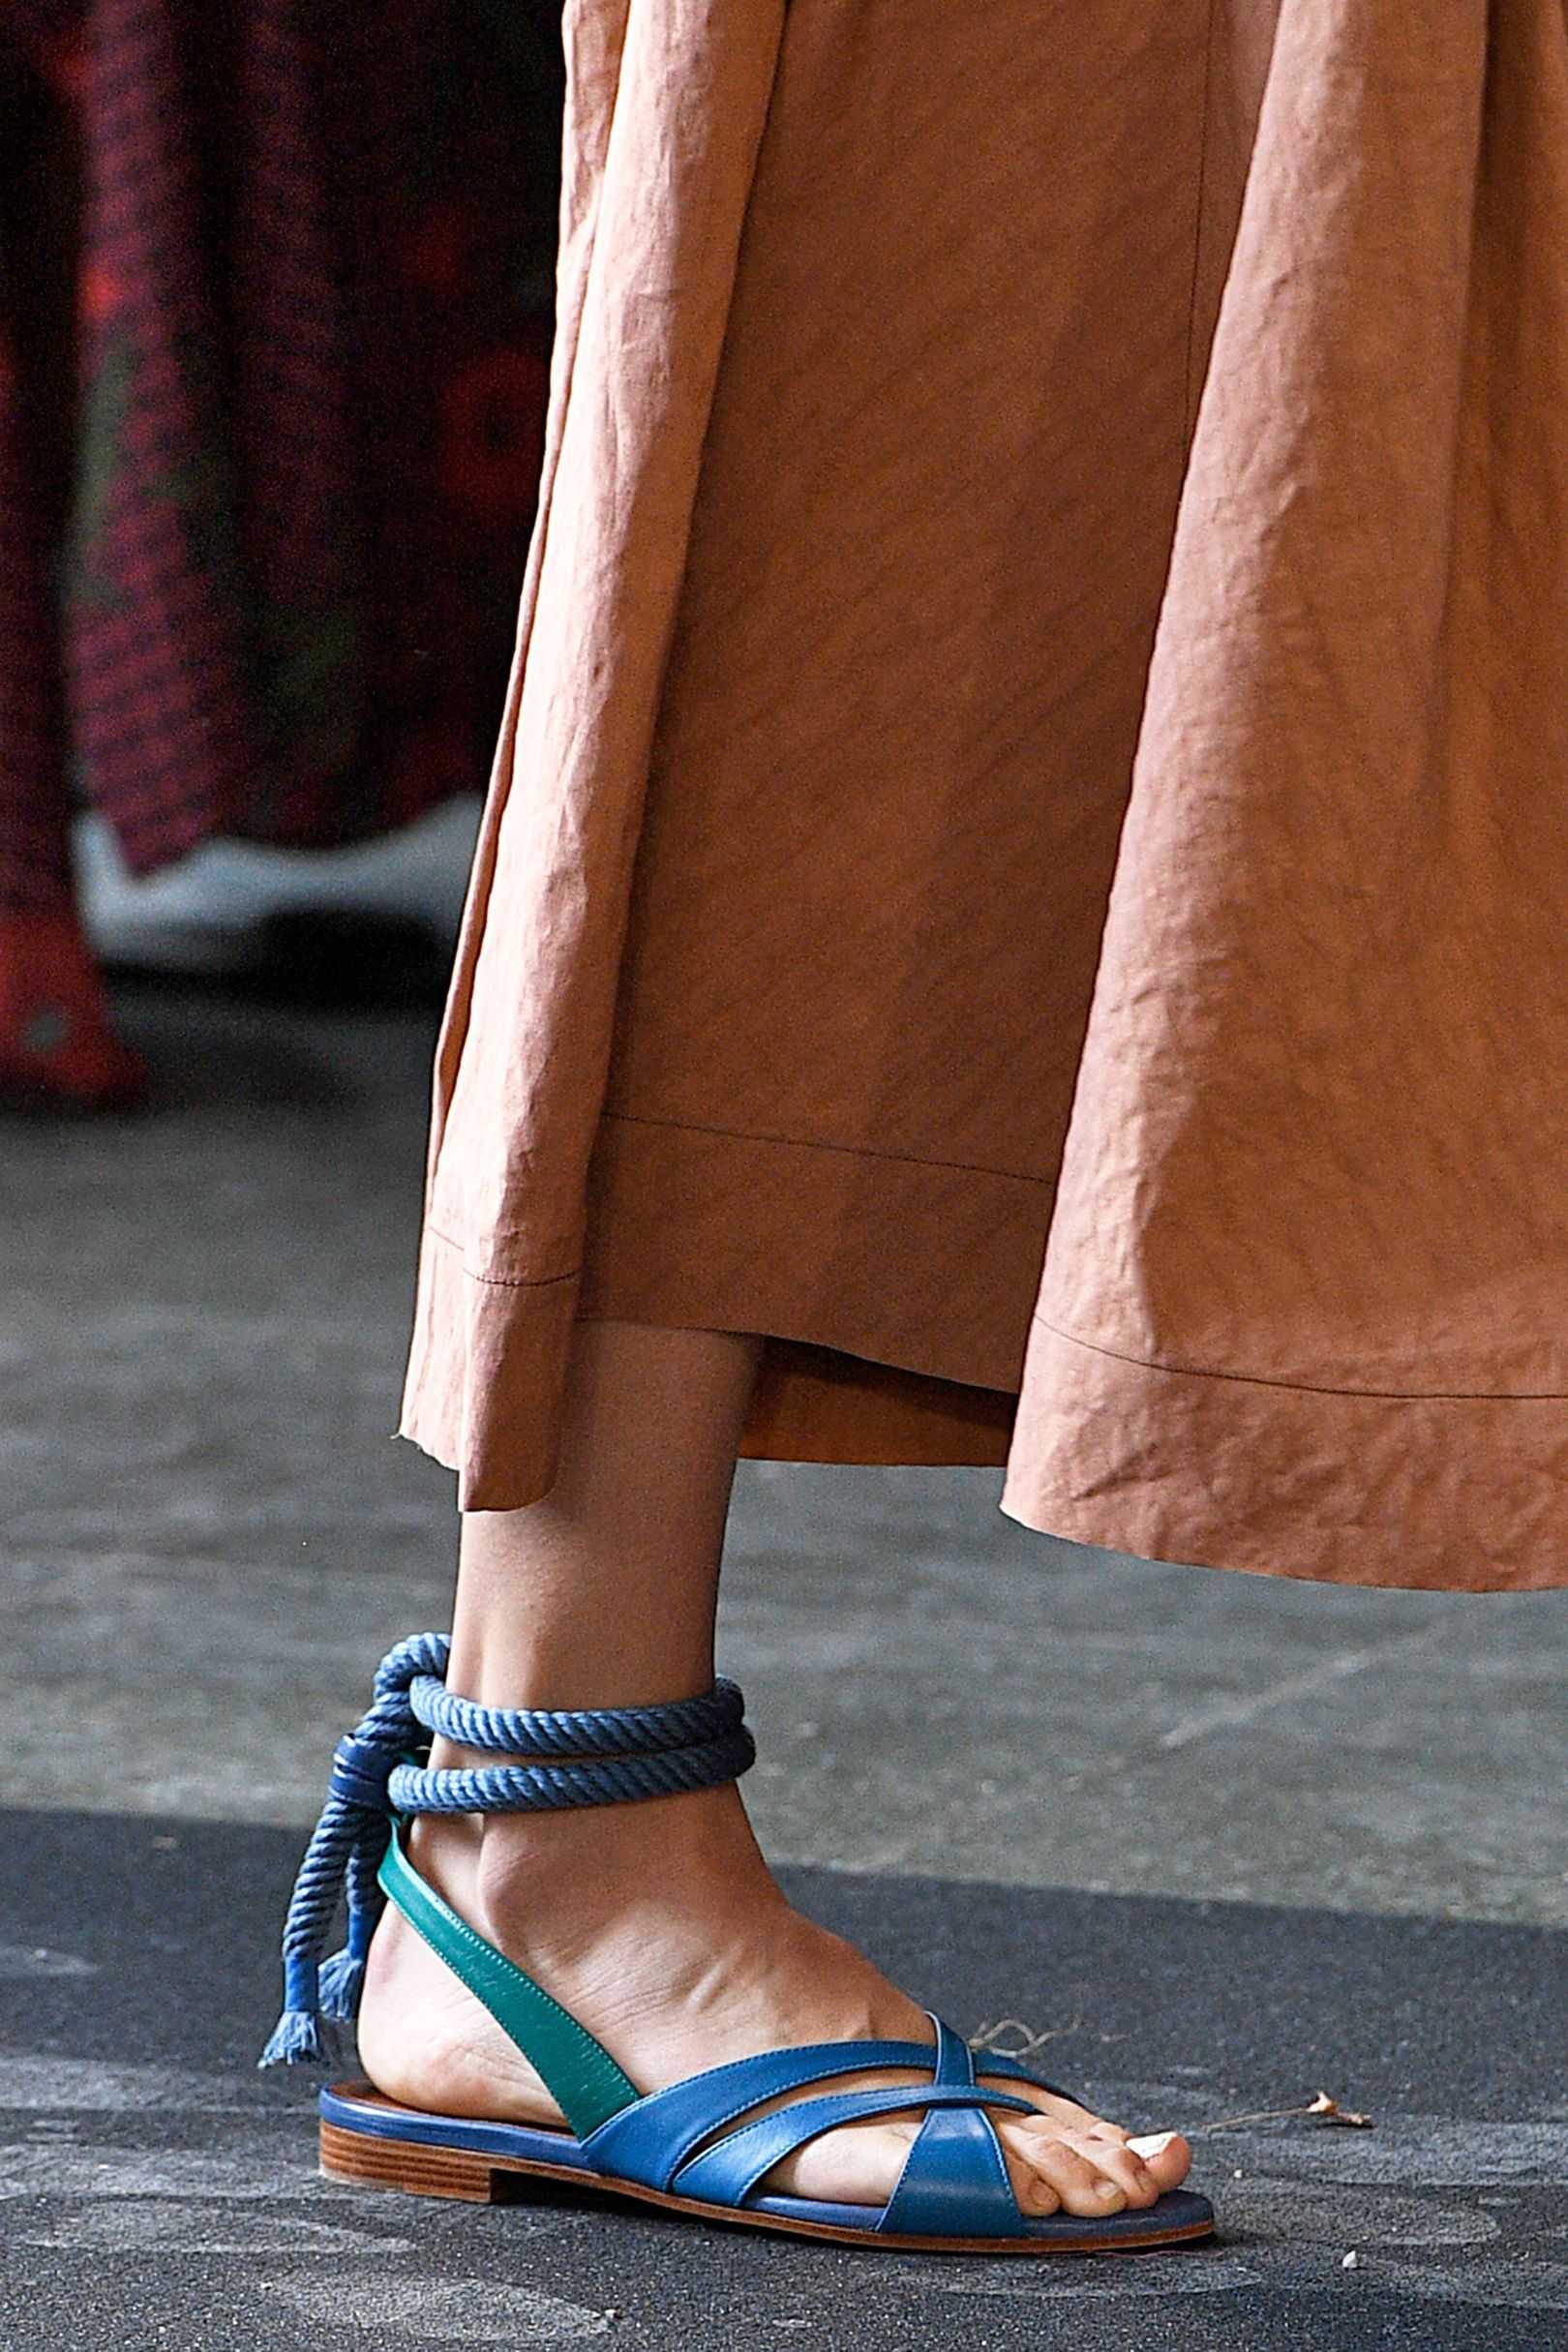 Shoes news and features | British Vogue